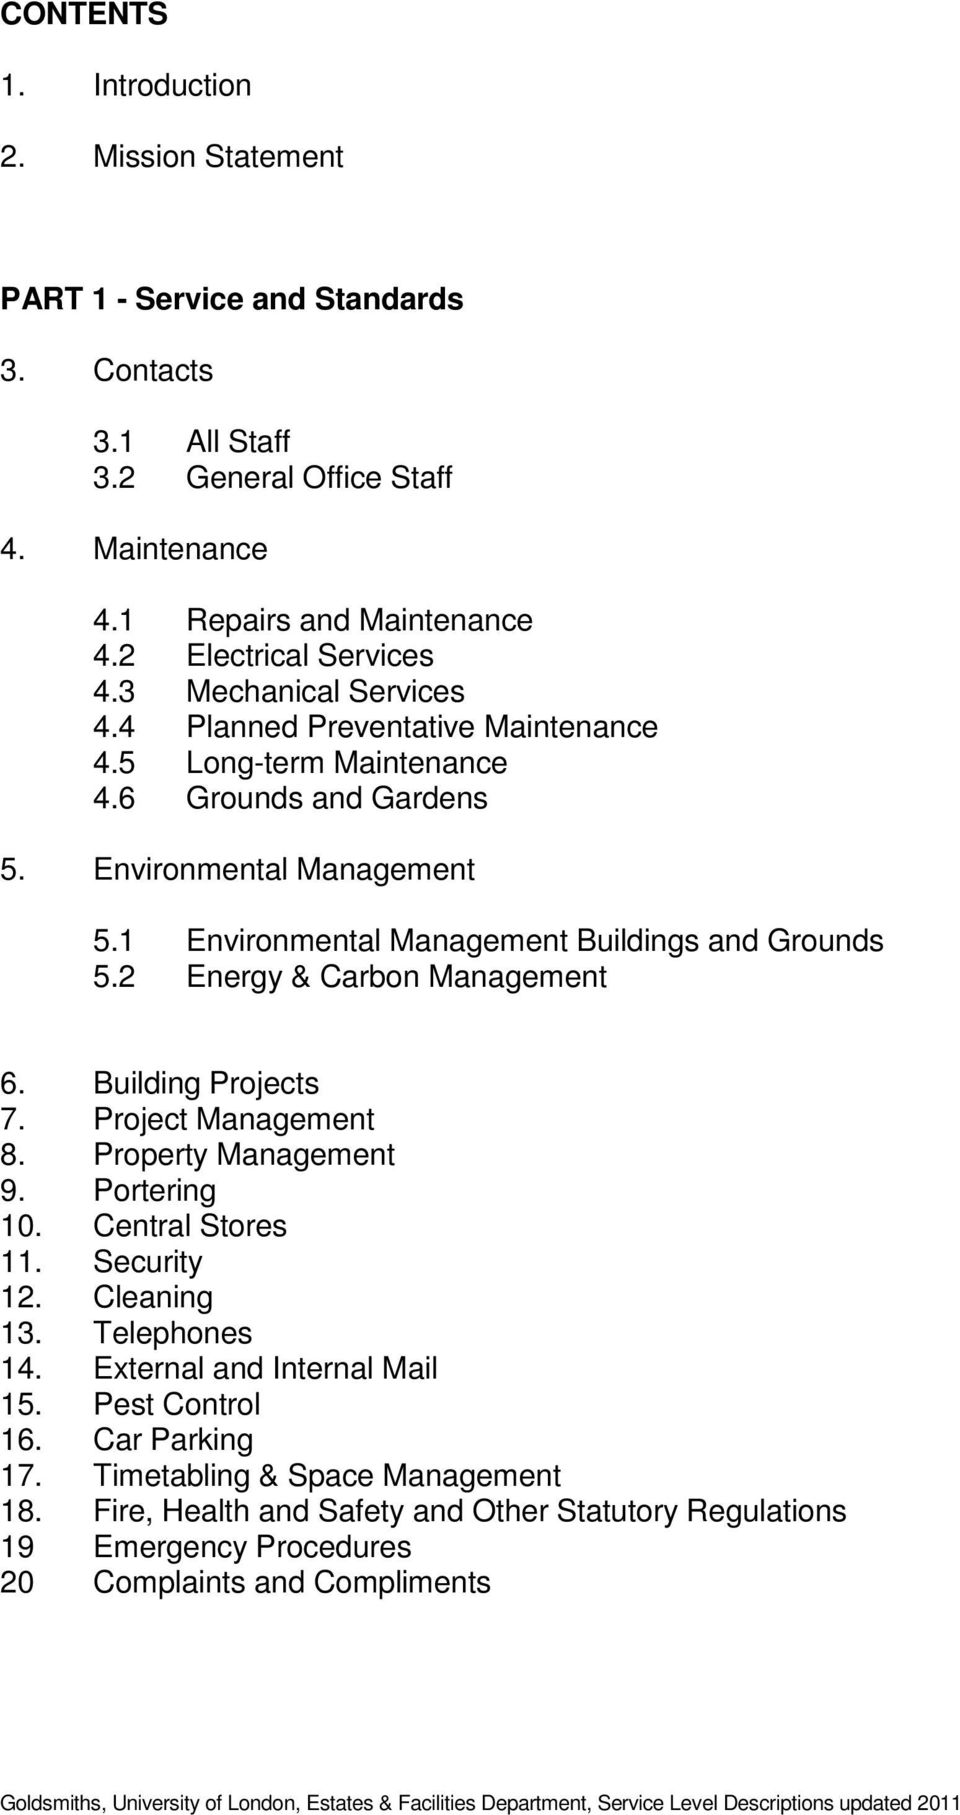 1 Environmental Management Buildings and Grounds 5.2 Energy & Carbon Management 6. Building Projects 7. Project Management 8. Property Management 9. Portering 10. Central Stores 11.